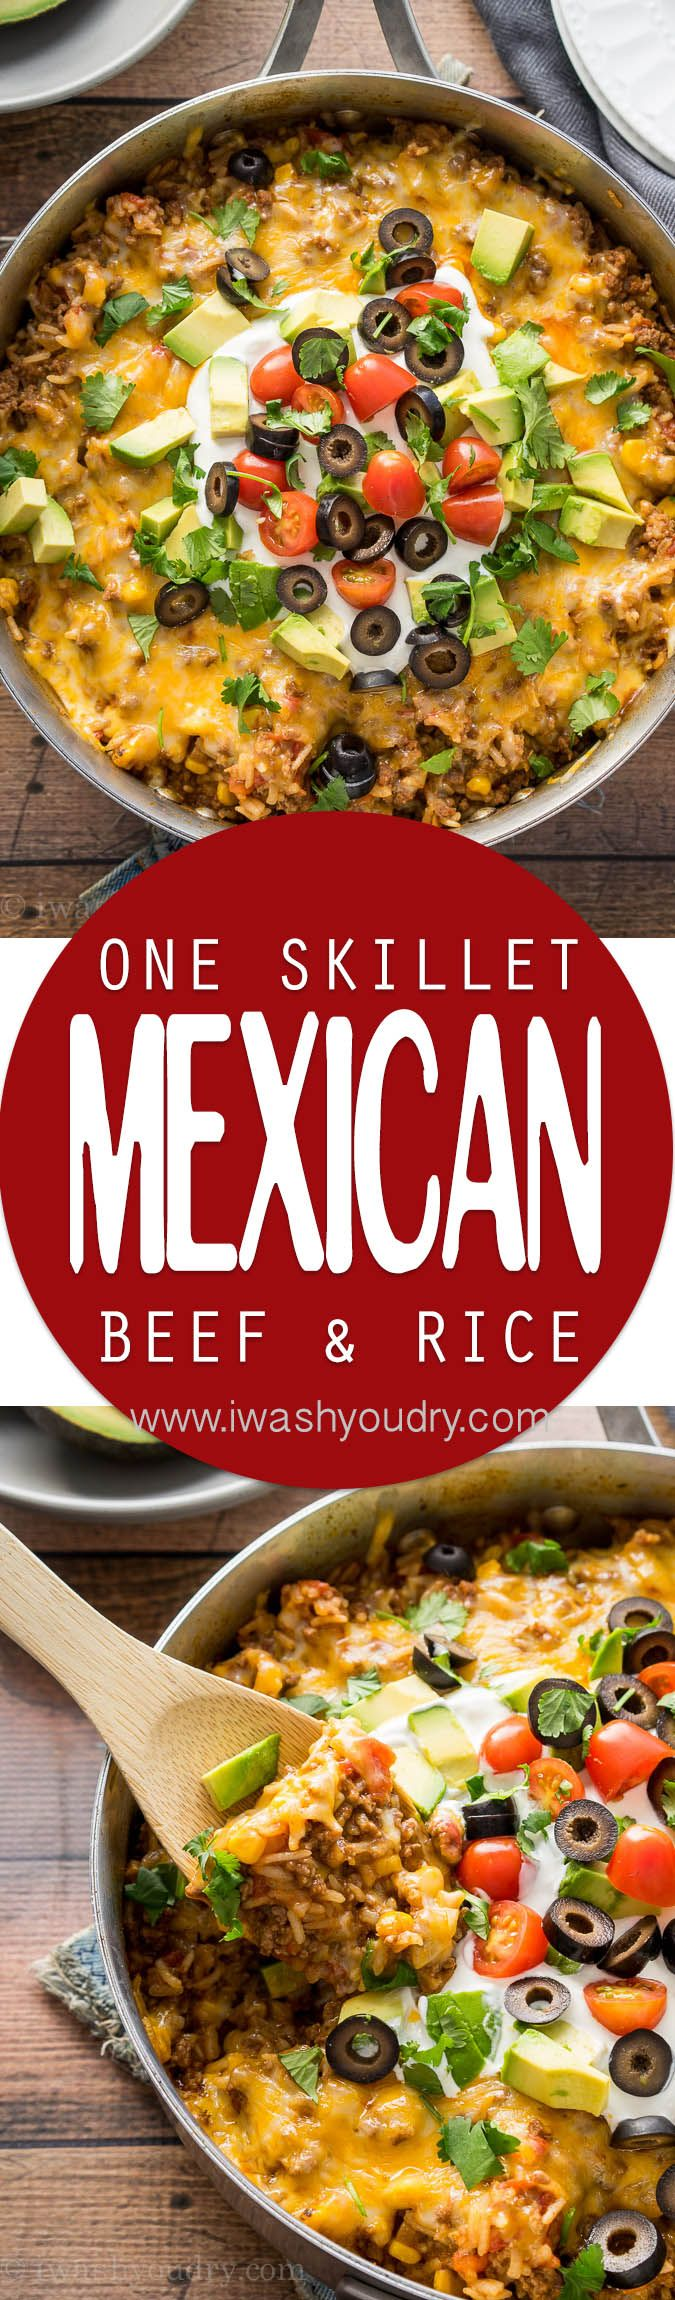 One Skillet Mexican Beef and Rice dinner recipe! Super quick and easy and eat the leftovers wrapped up in tortillas!